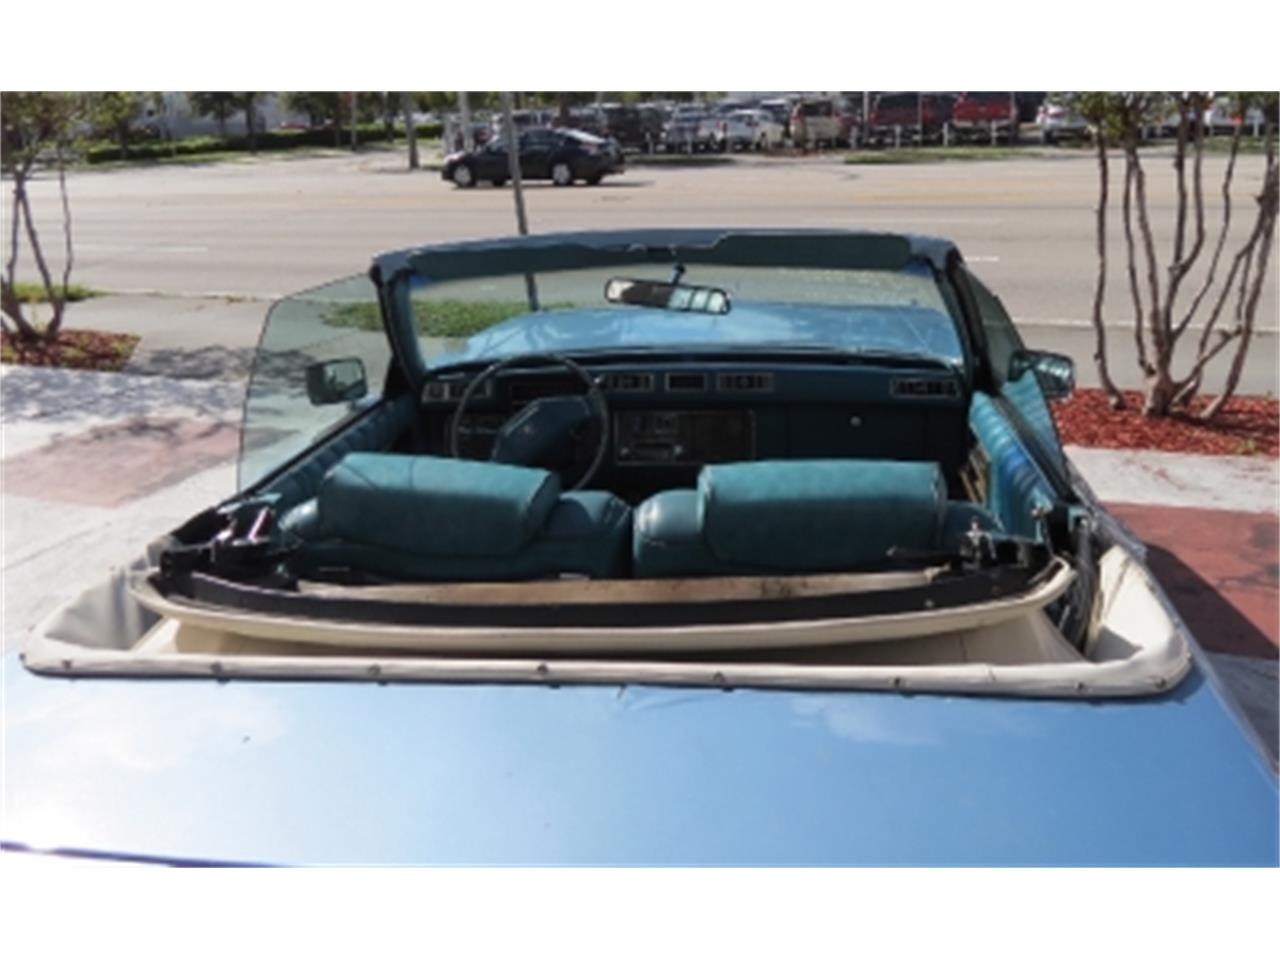 Large Picture of 1979 Cadillac Seville located in Florida - $12,500.00 Offered by Sobe Classics - D4F8